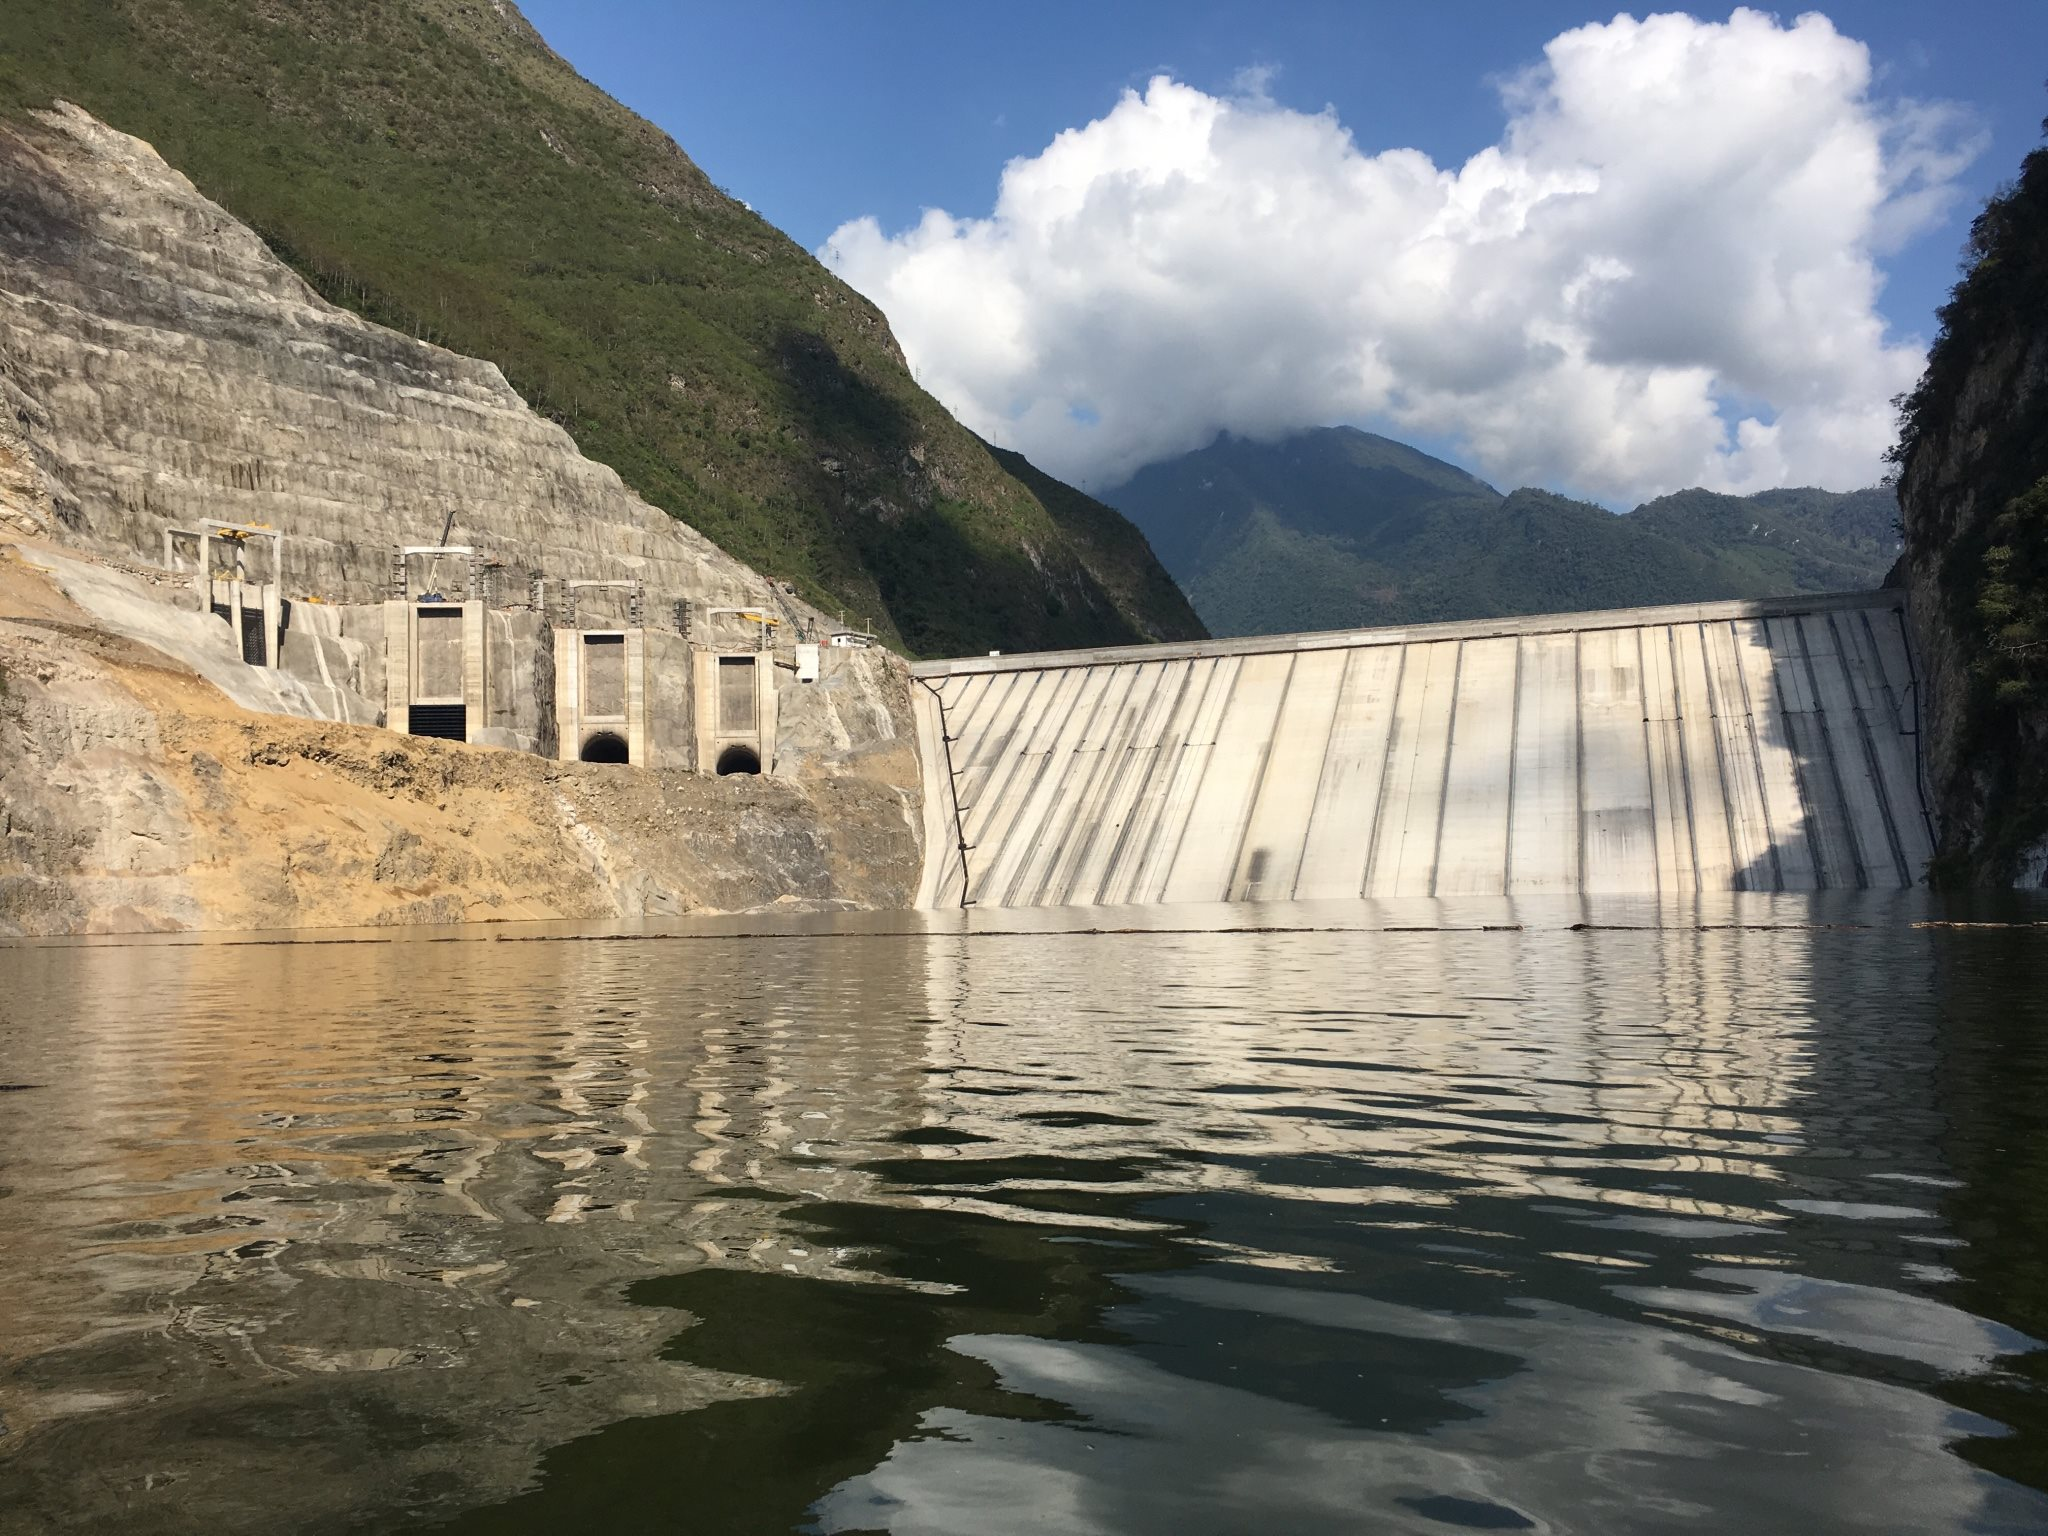 Chaglla hydropower dam, Peru, during impoundment.